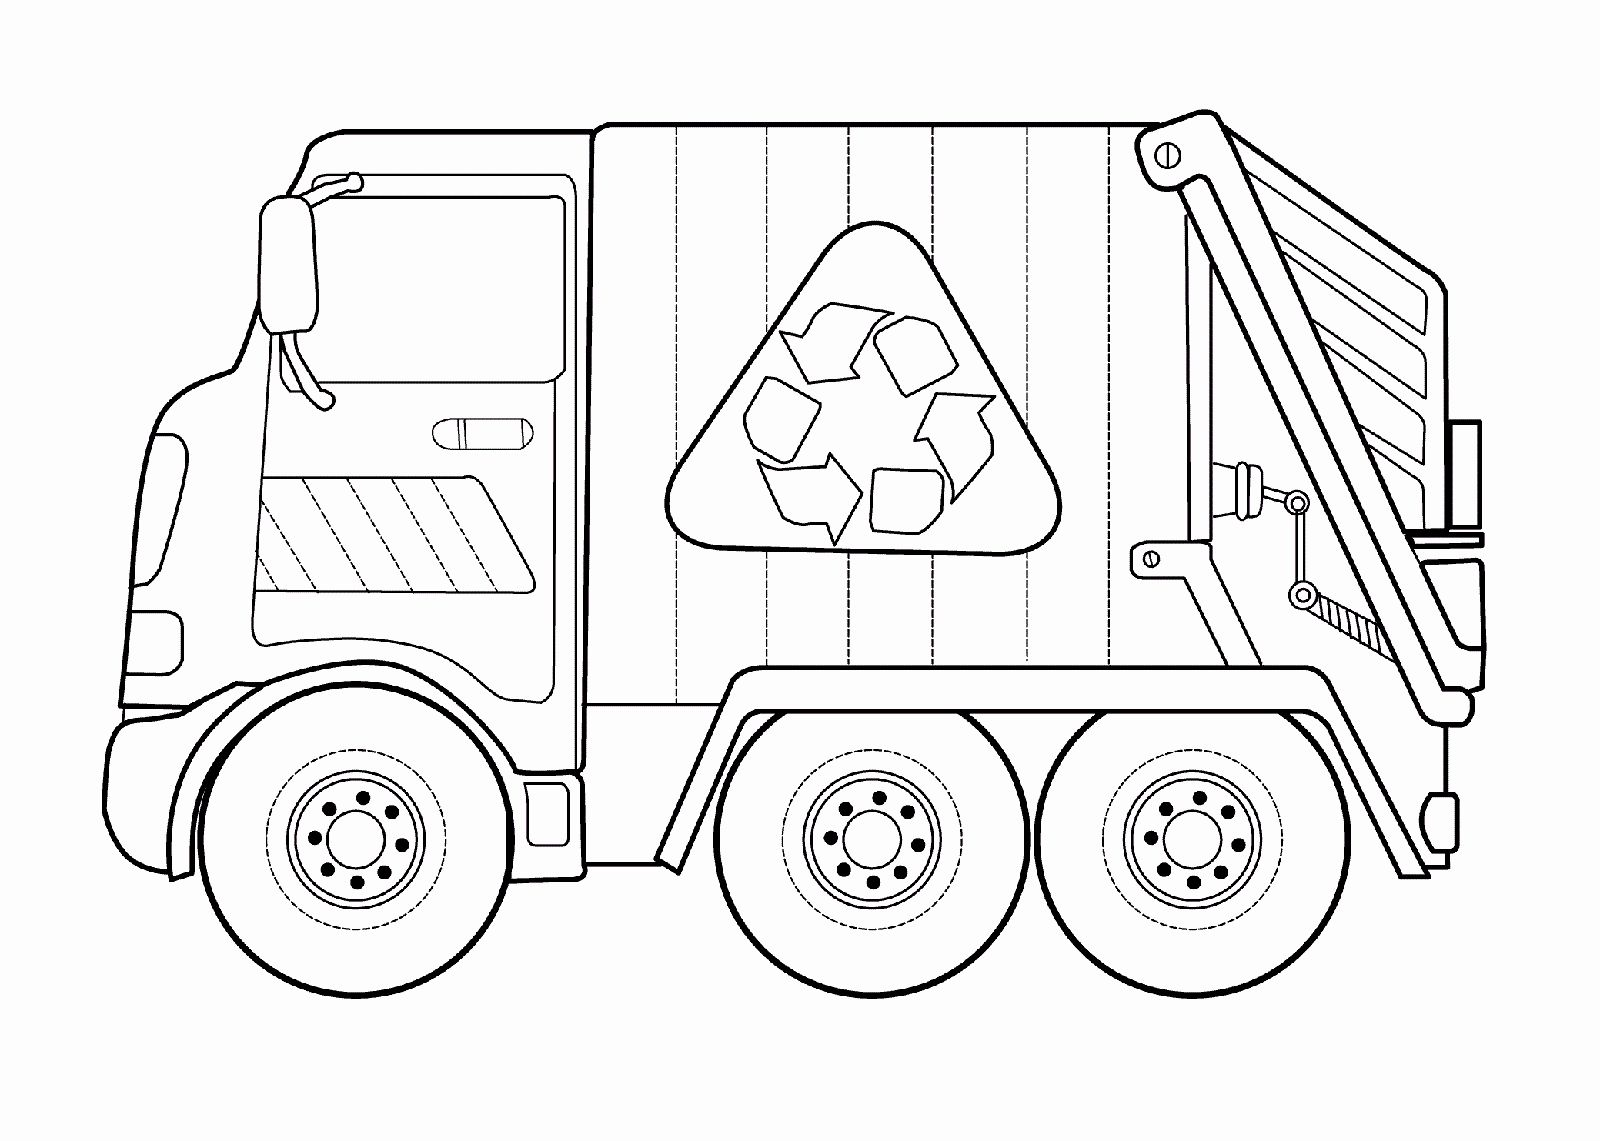 Fire Truck Coloring Pages Pdf Inspirational Coloring Ideas Unicorn Coloring Pages Presch Truck Coloring Pages Monster Truck Coloring Pages Train Coloring Pages